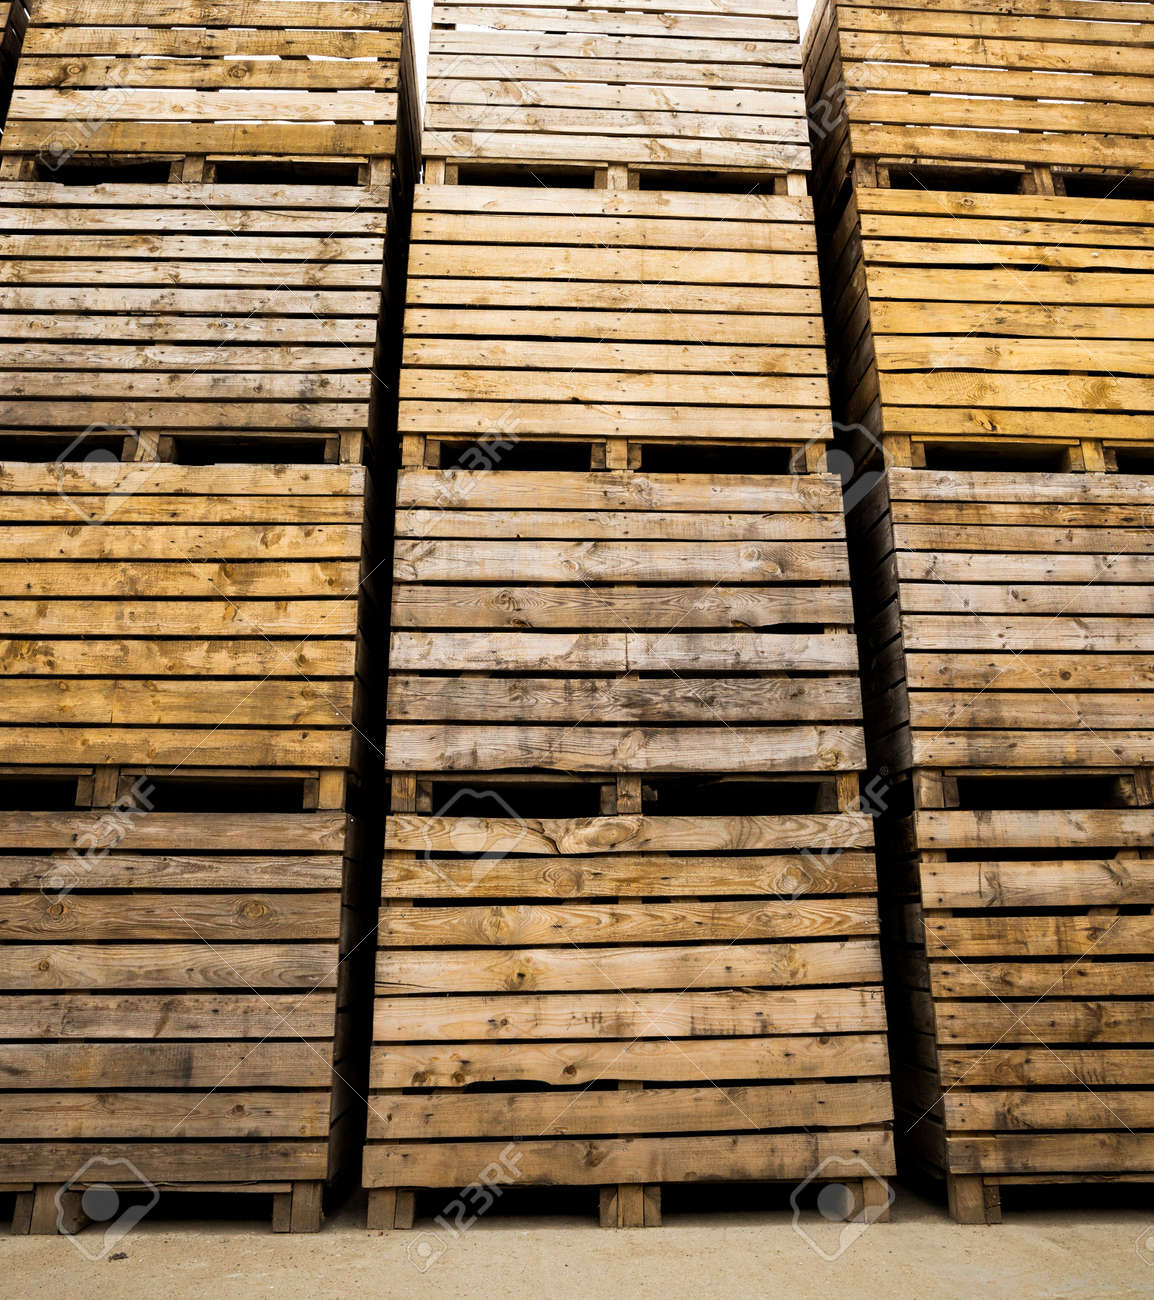 old wooden boxes for storing vegetables and fruit harvest after harvest, storage facilities on the farm, cloudy weather - 172179687